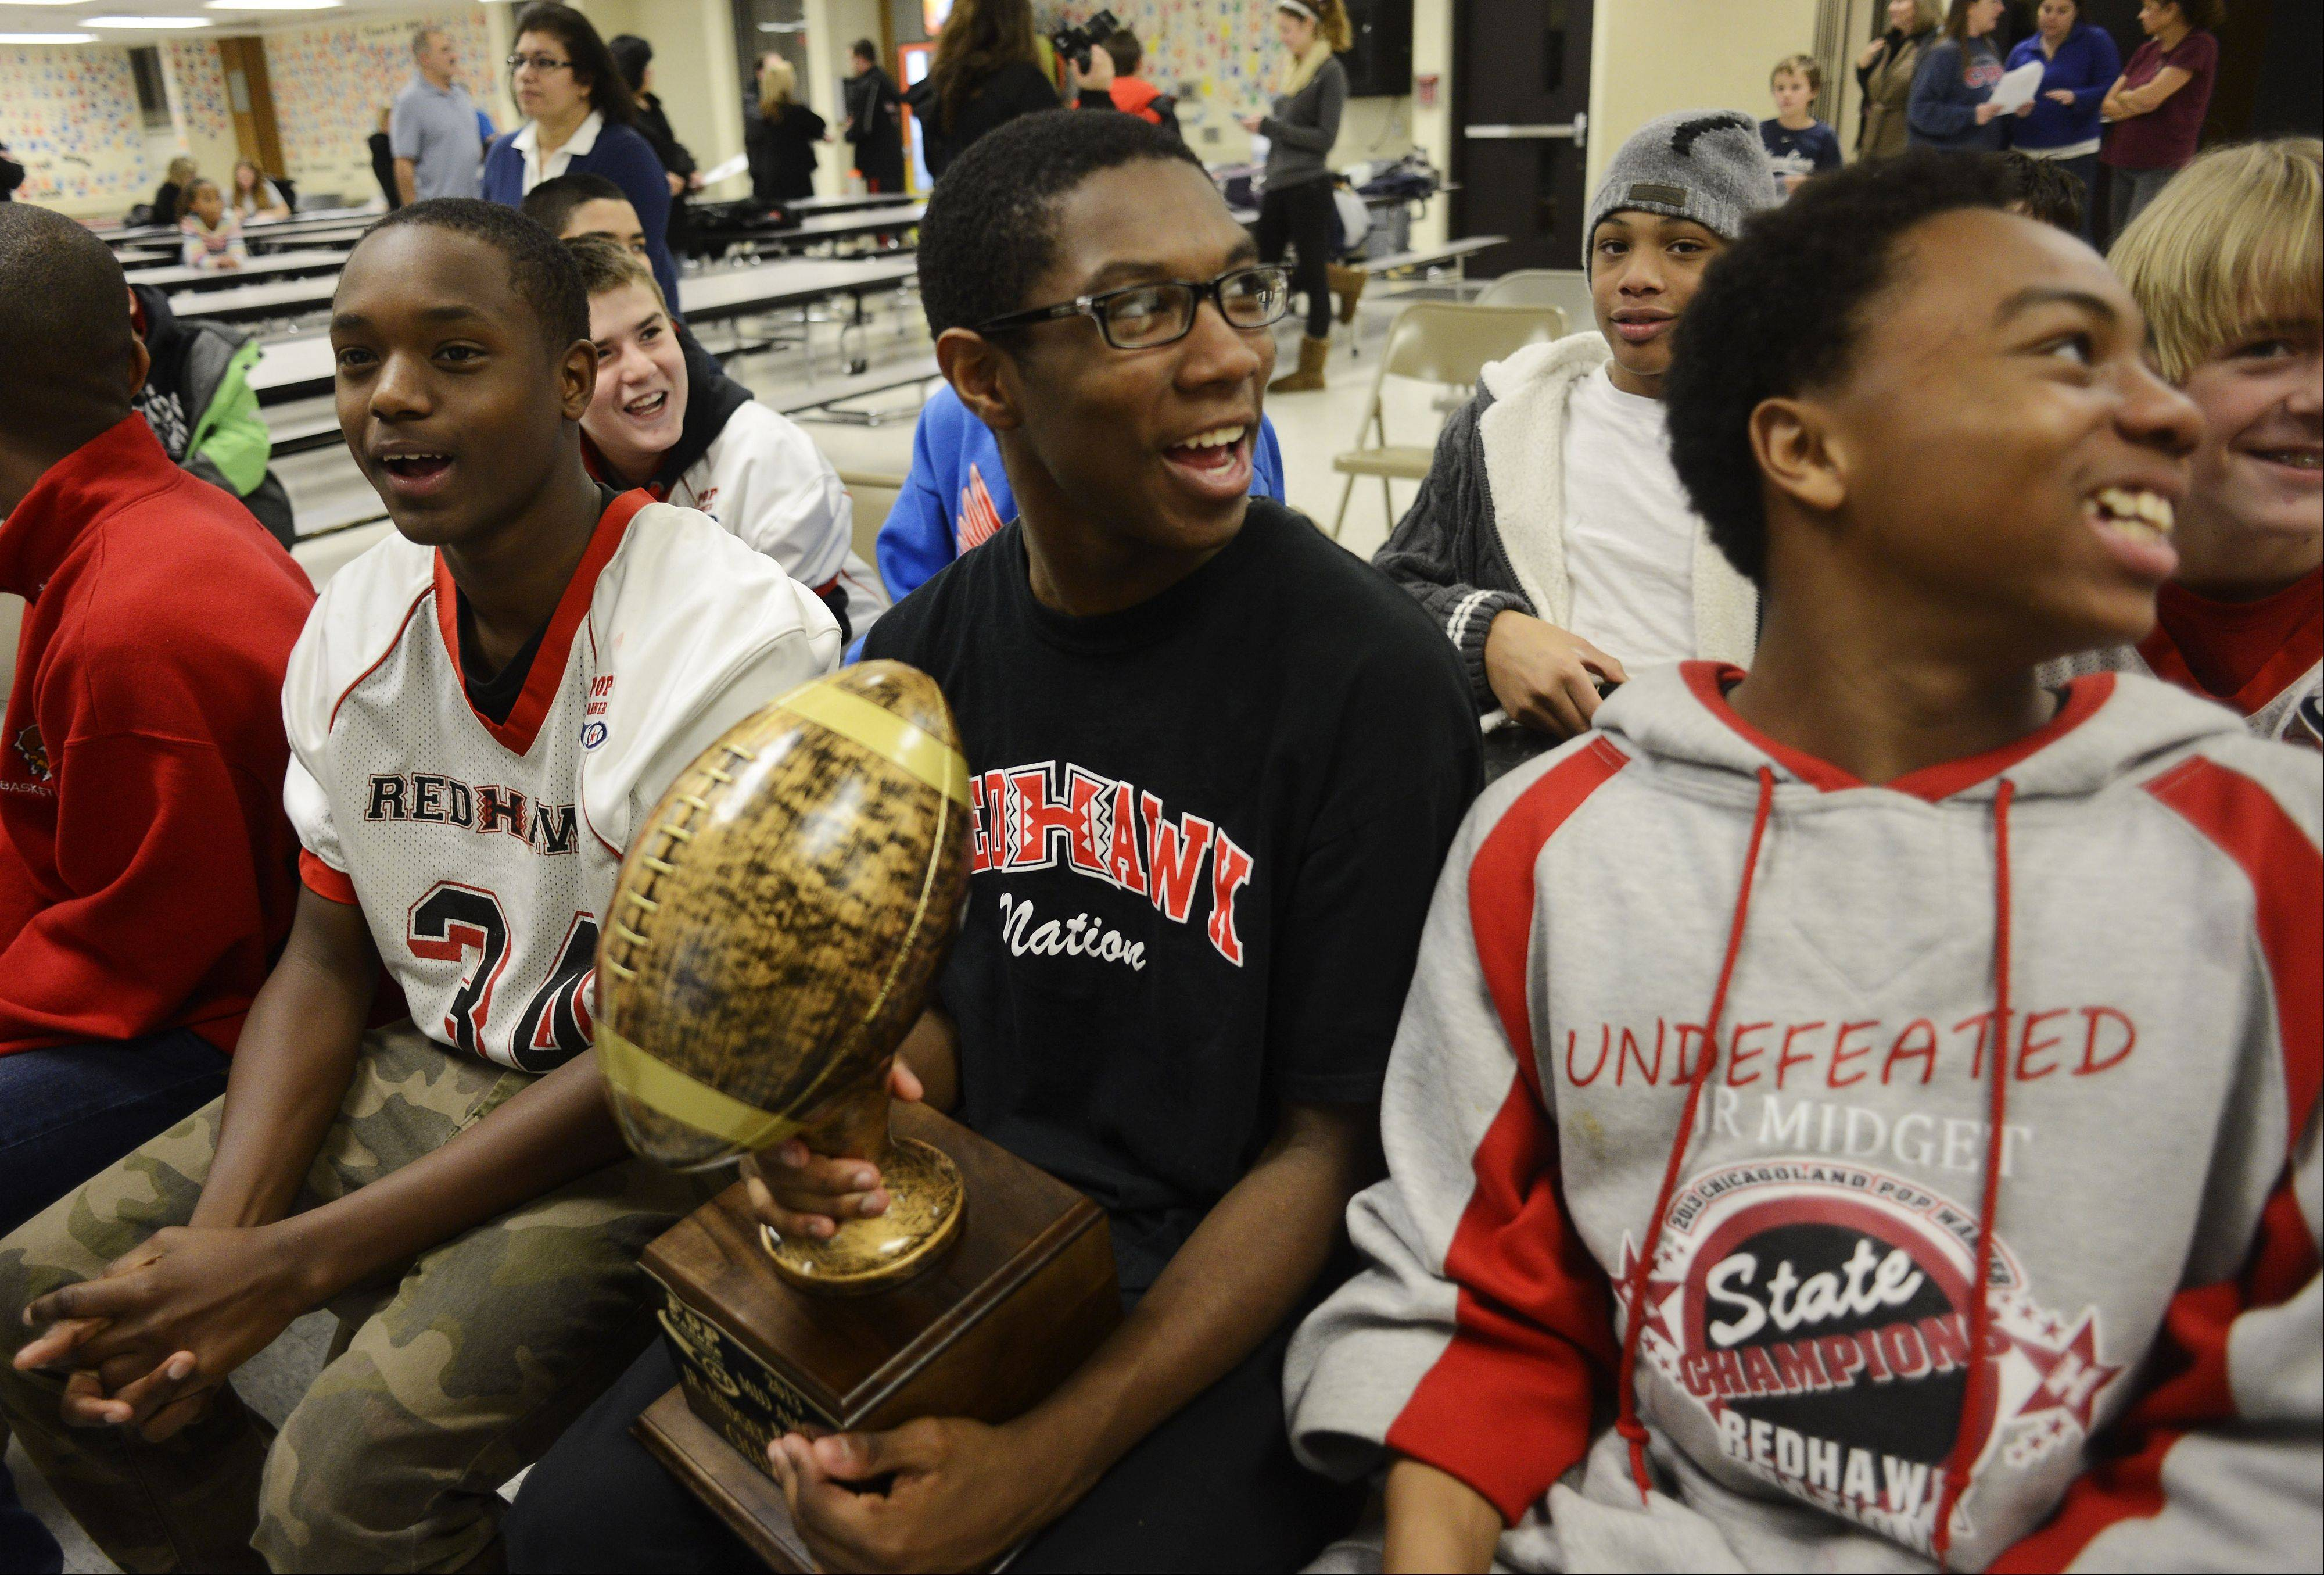 Khalen Young, 14, of Hoffman Estates holds the Hoffman Estates Junior Midget team regional championship trophy while seated with Clevontae Jackson, left, and JJ Daniels as the team waits to find out what team they will be facing in the Pop Warner finals in Orlando.